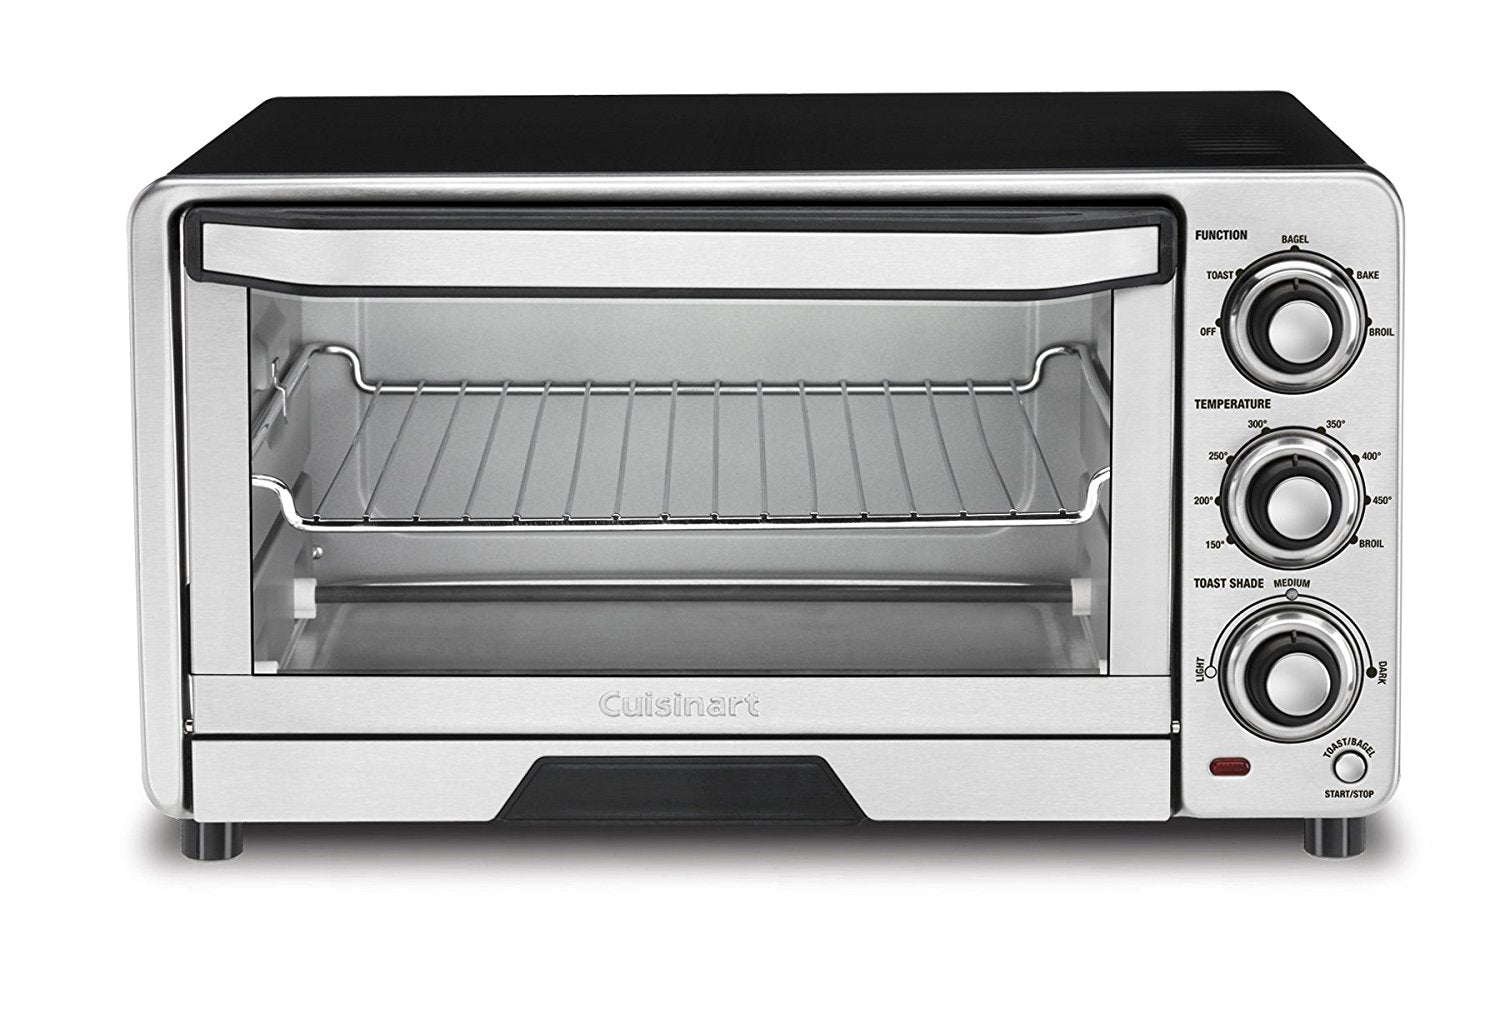 Cuisinart Classic Toaster Oven